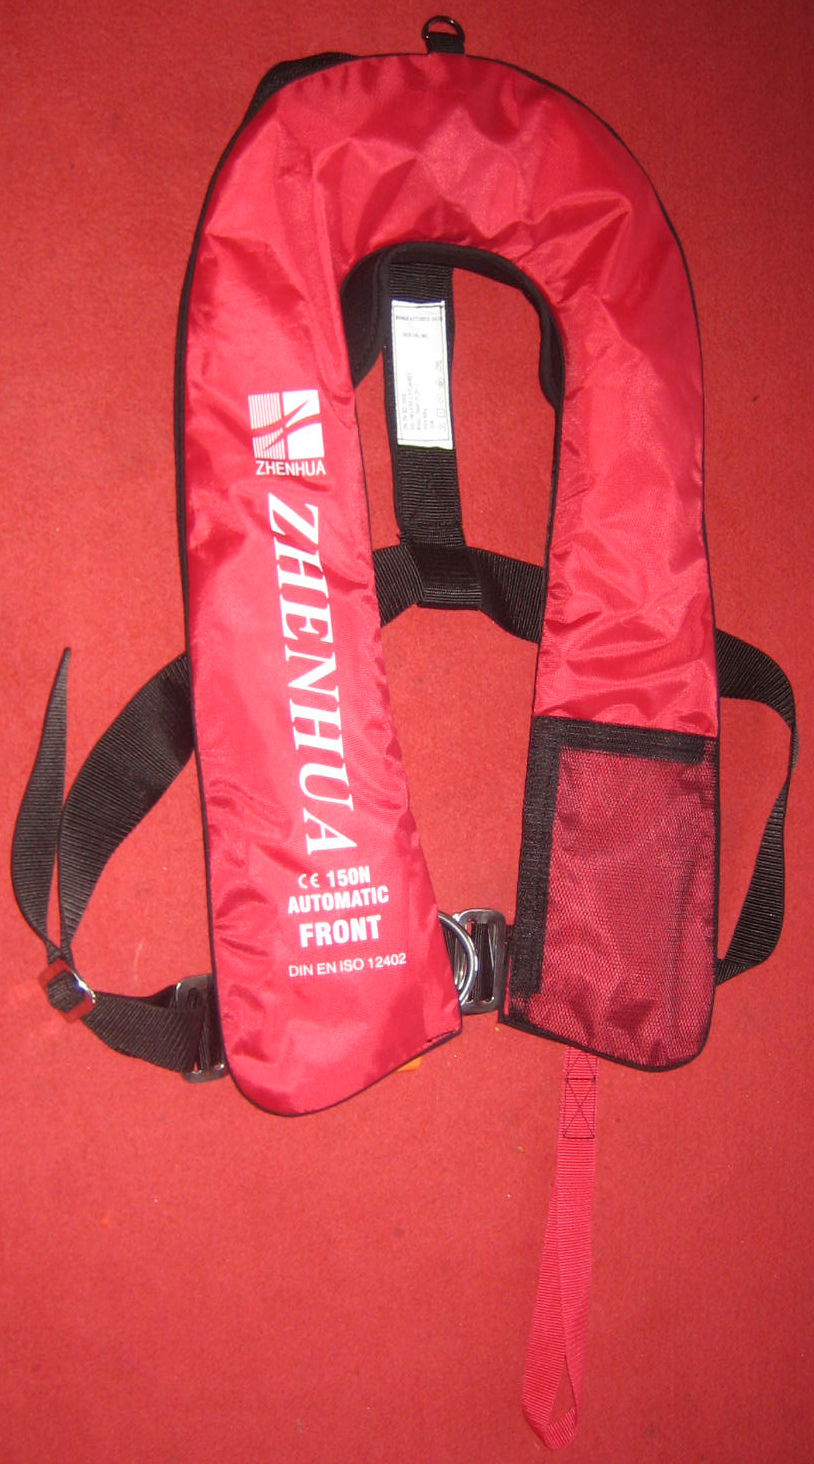 Free Shipping ISO12402-3 approved Automatic inflatable life jacket PFD marine lifejacket inflate lifejacket 150N buoyancy(China (Mainland))